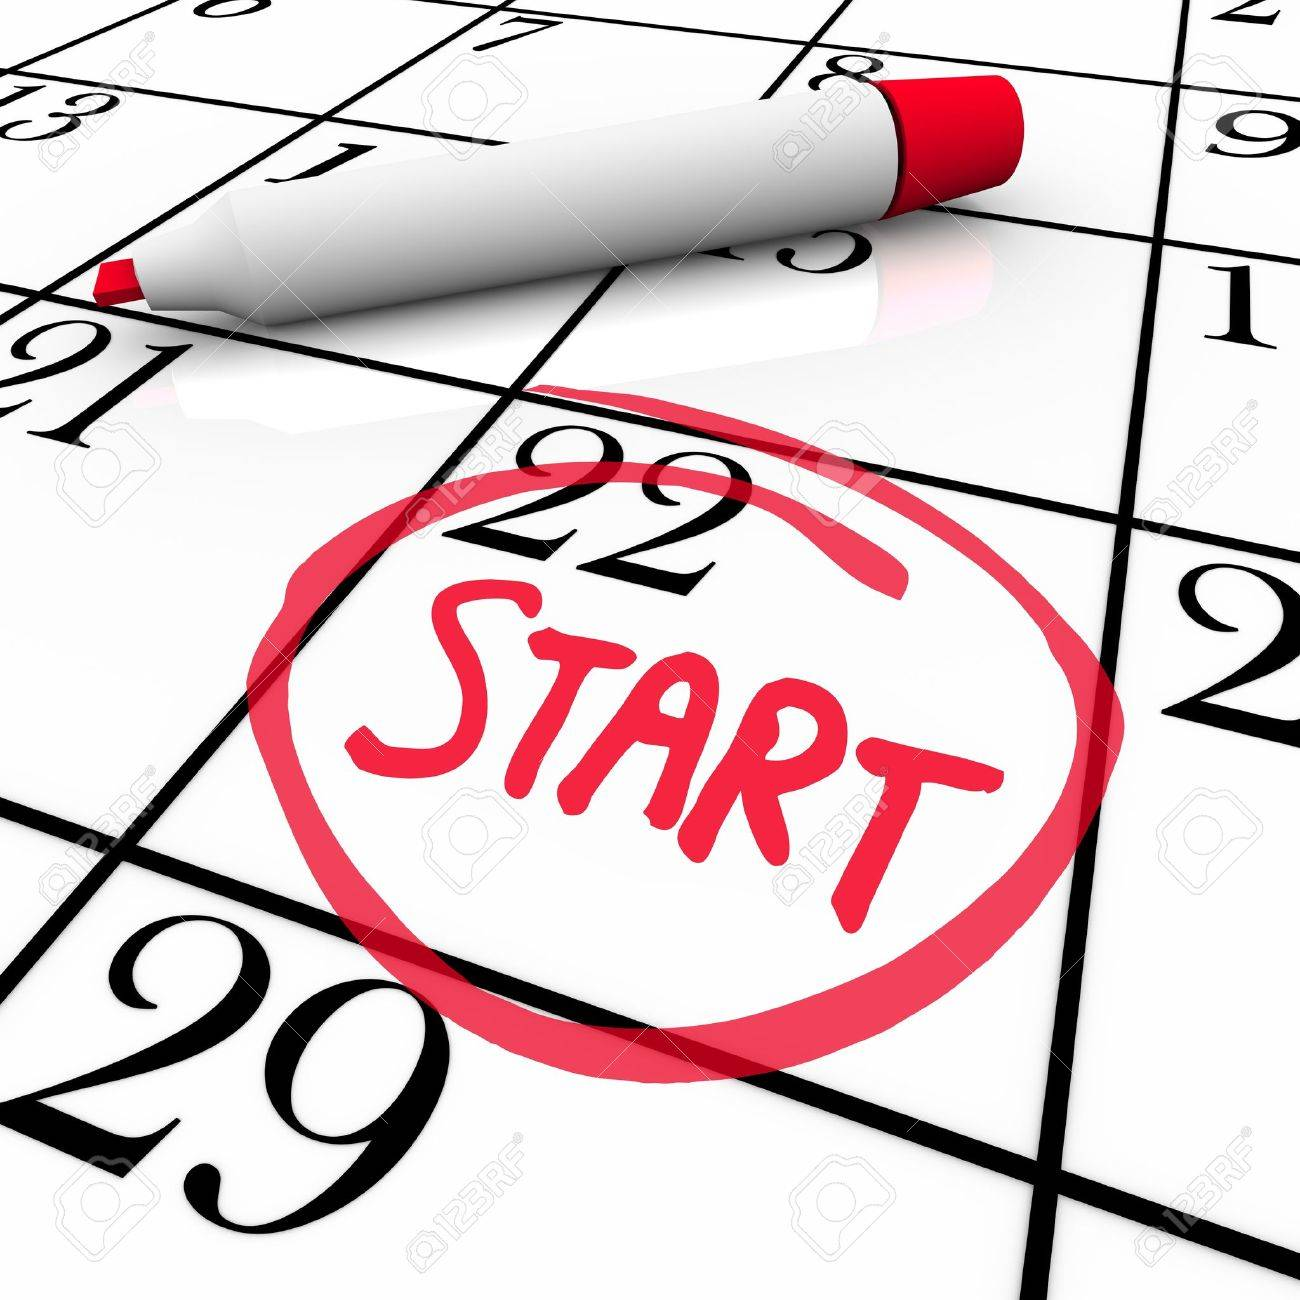 A day with the word Start circled on a calendar to mark the beginning of a new job, school semester or other significant event Stock Photo - 11826653